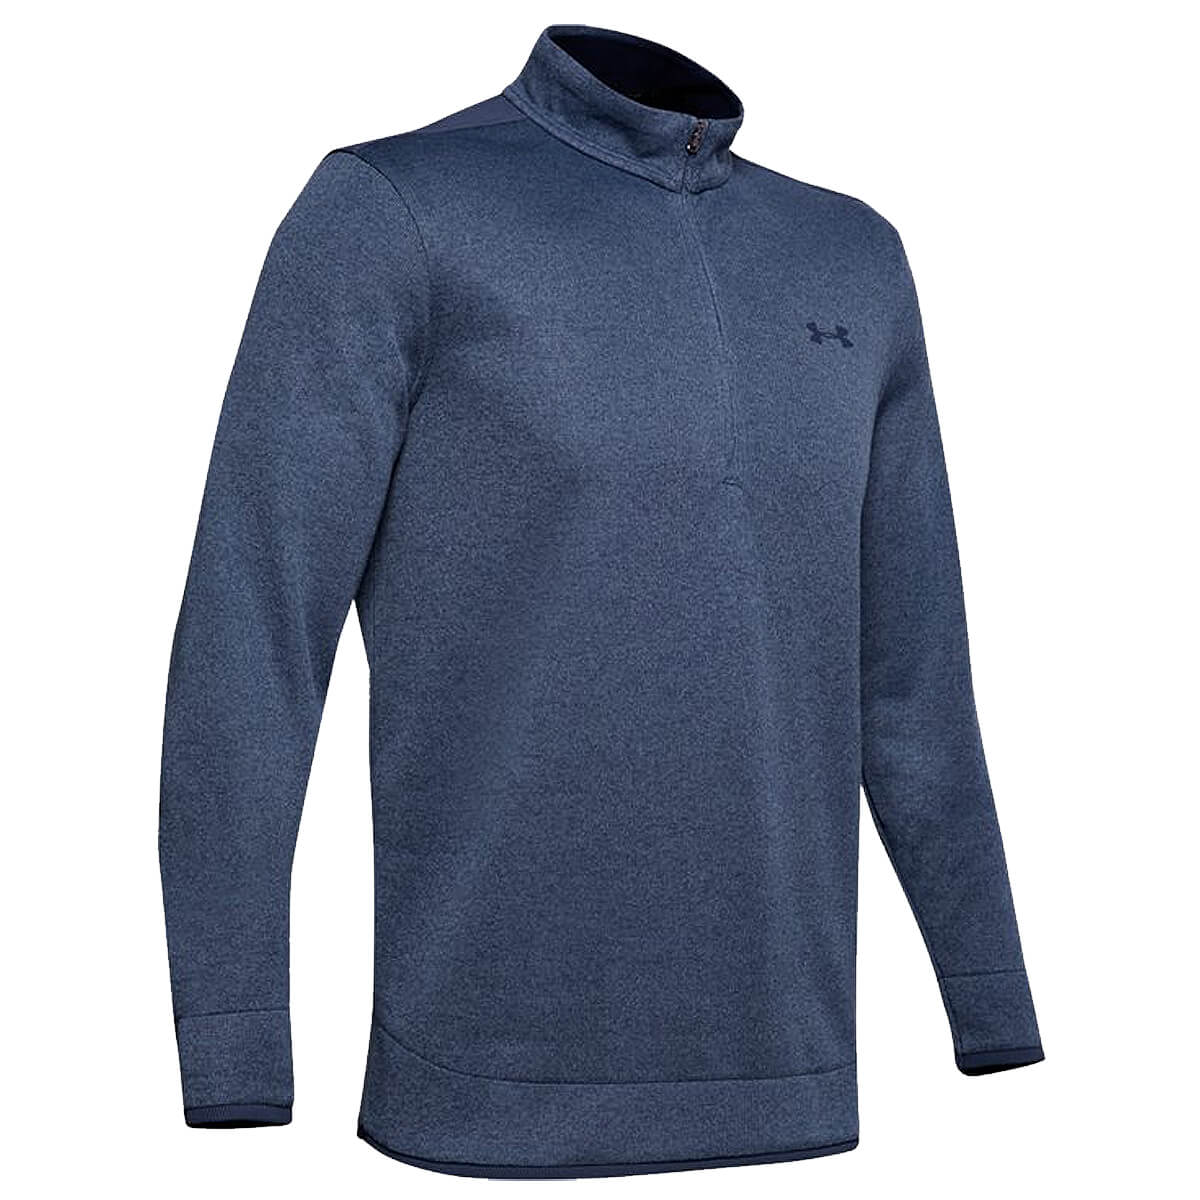 Under-Armour-Homme-UA-sweaterfleece-1-2-zip-resistant-a-l-039-eau-Pullover-40-OFF-RRP miniature 19